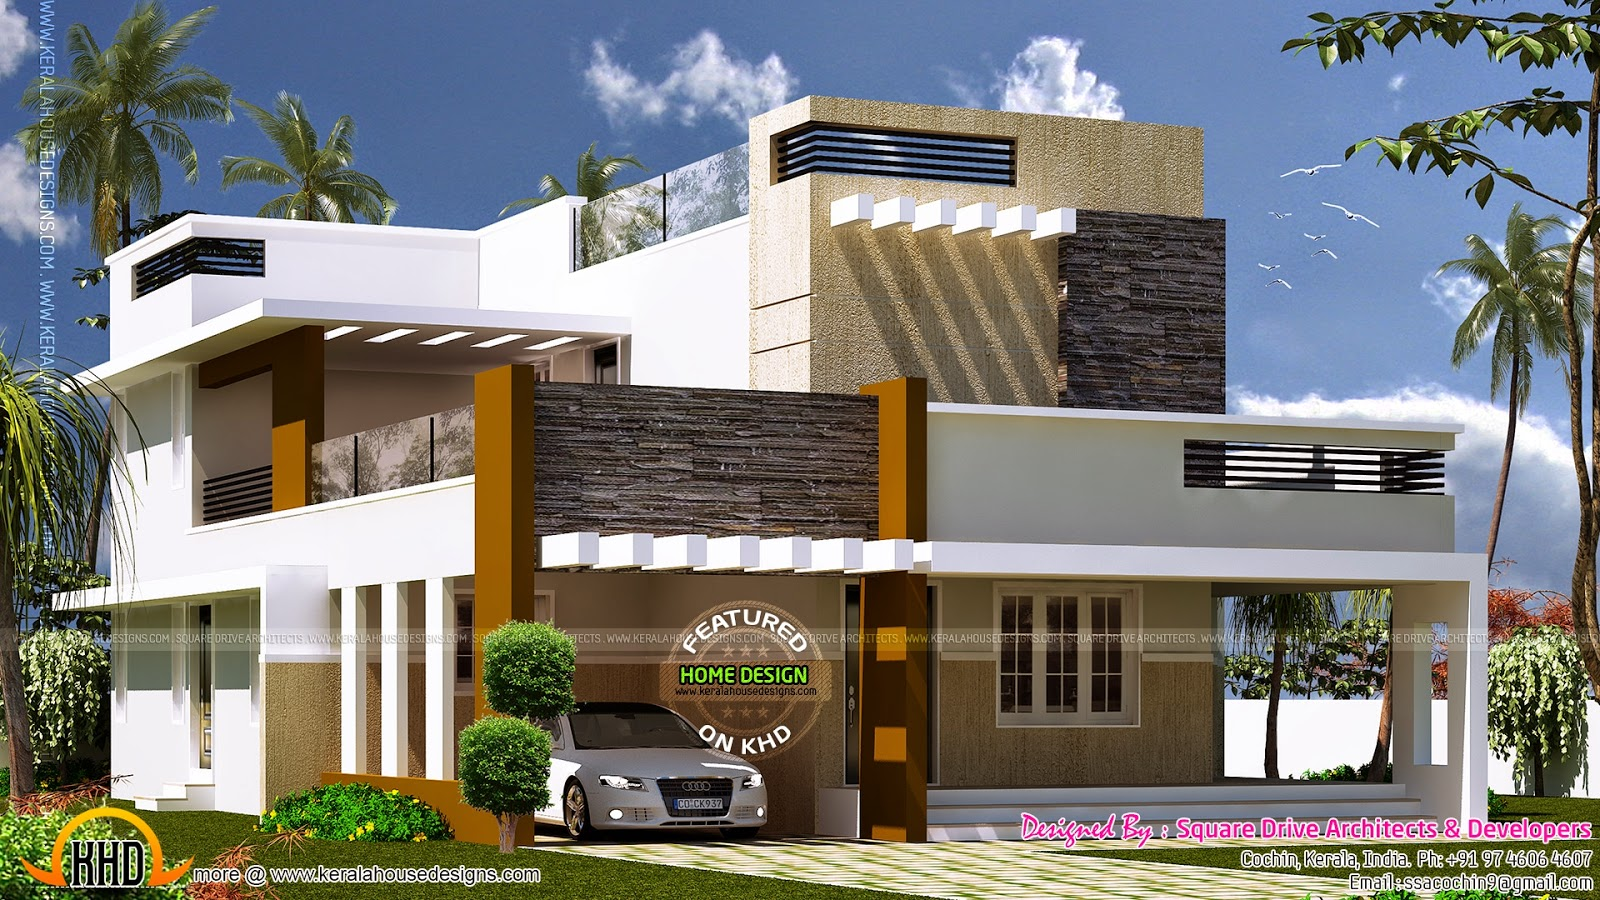 Exterior design of contemporary villa kerala home design for Villa ideas designs